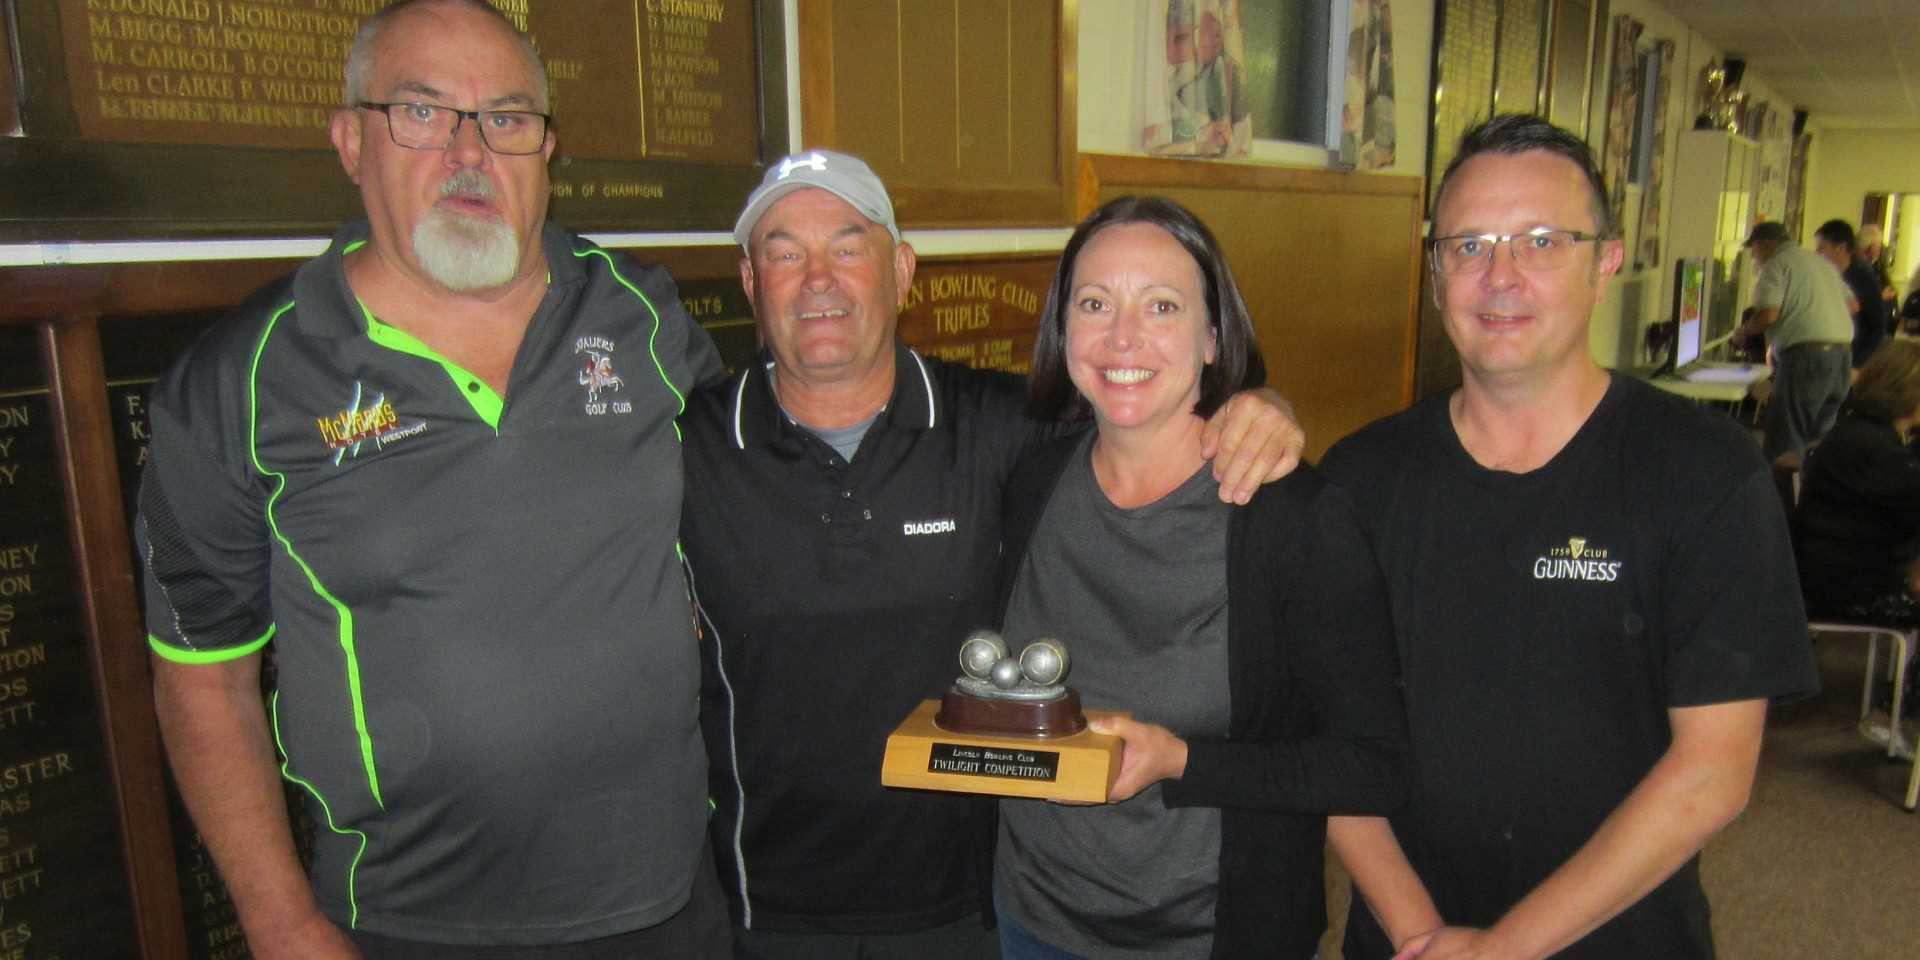 The Overall Winners of Community Bowls 2021 - 'Grifinator' : Allan Rolton, Geoff Griffiths, Megan Smith & Chris Smith